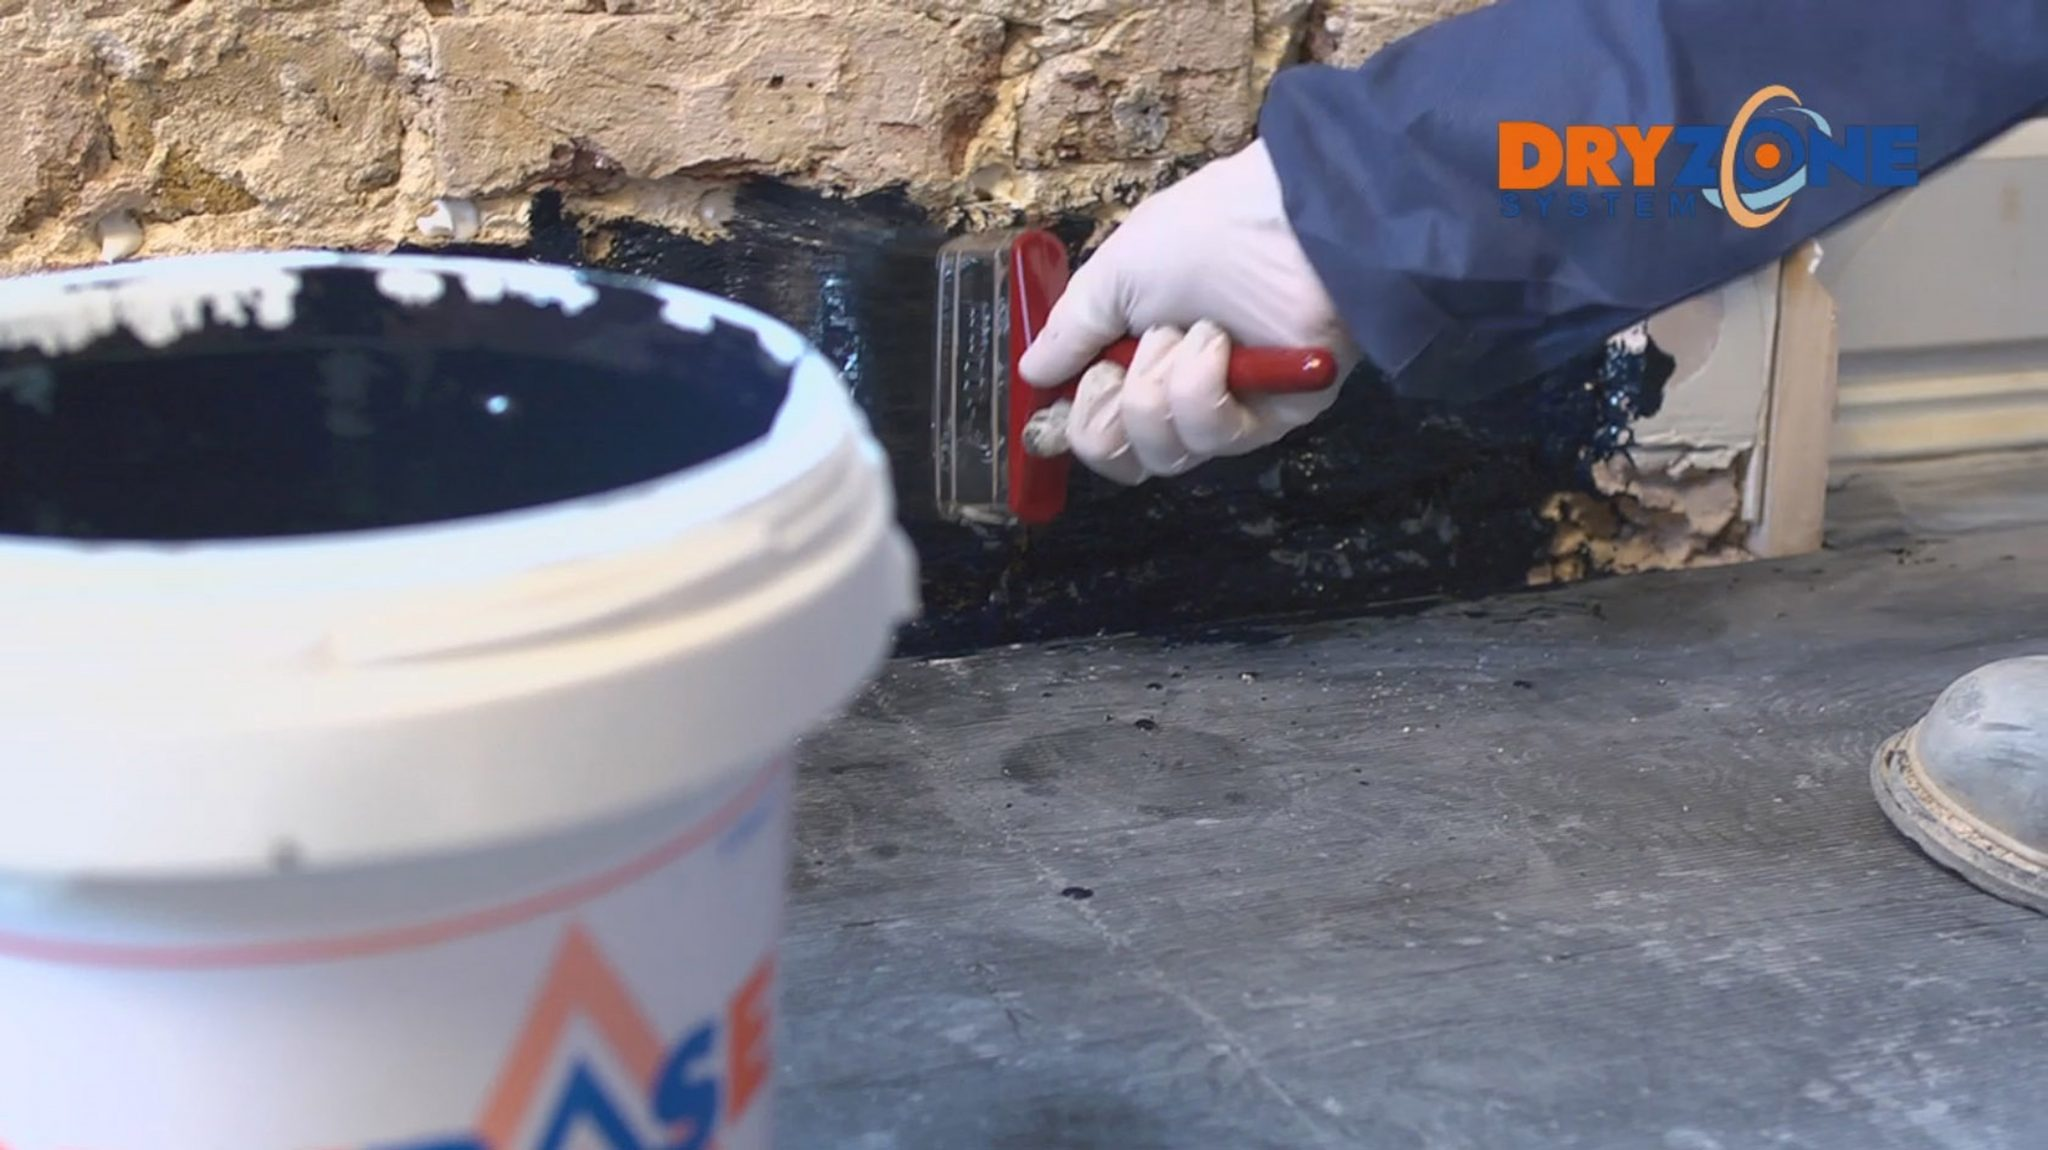 Handy Drybase Damp And Vapour Barrier In A Bucket From